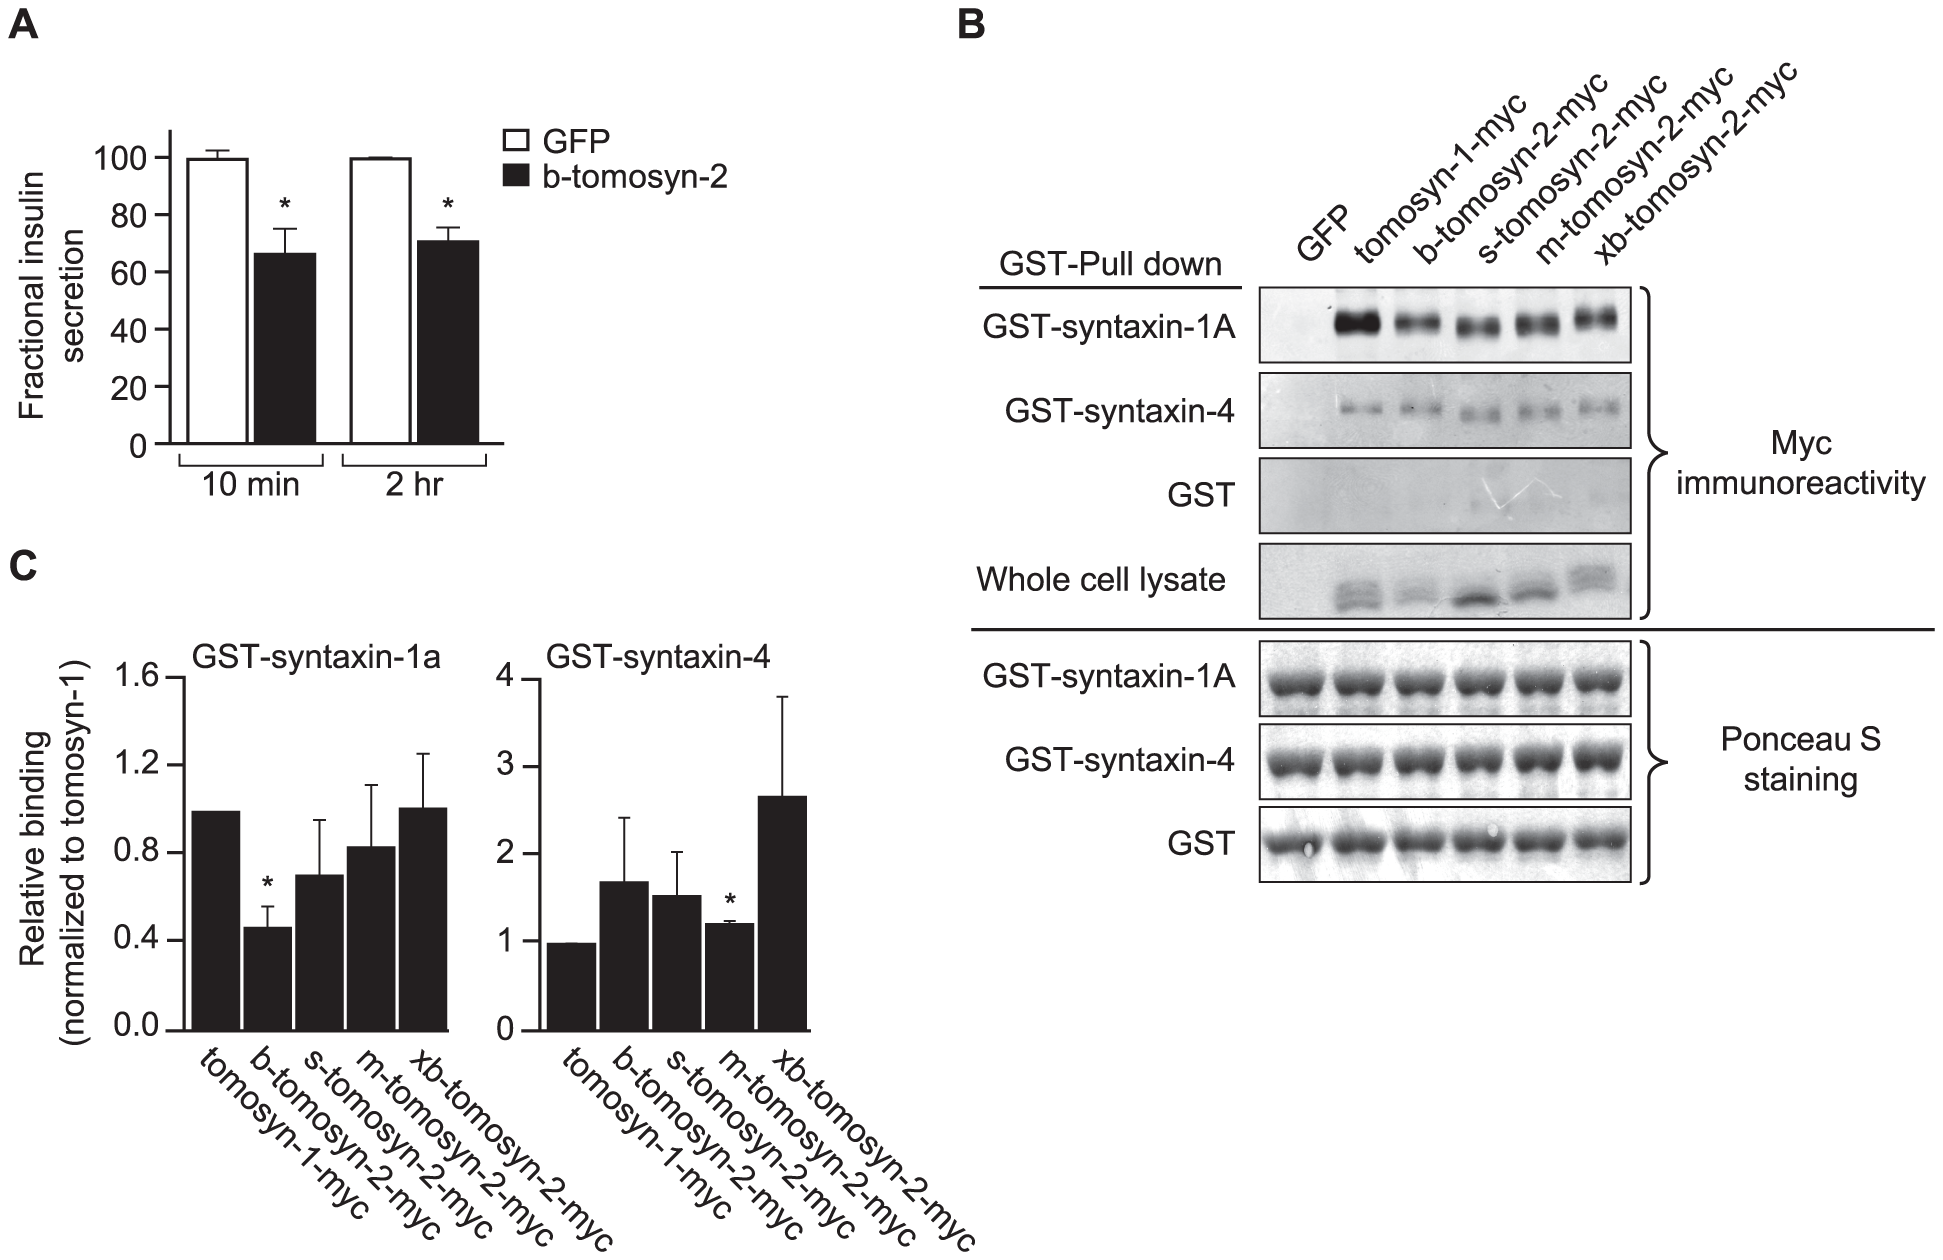 Overexpression of tomosyn-2 inhibits insulin secretion in INS1 (832/13) cells and binds syntaxin-1A and -4.